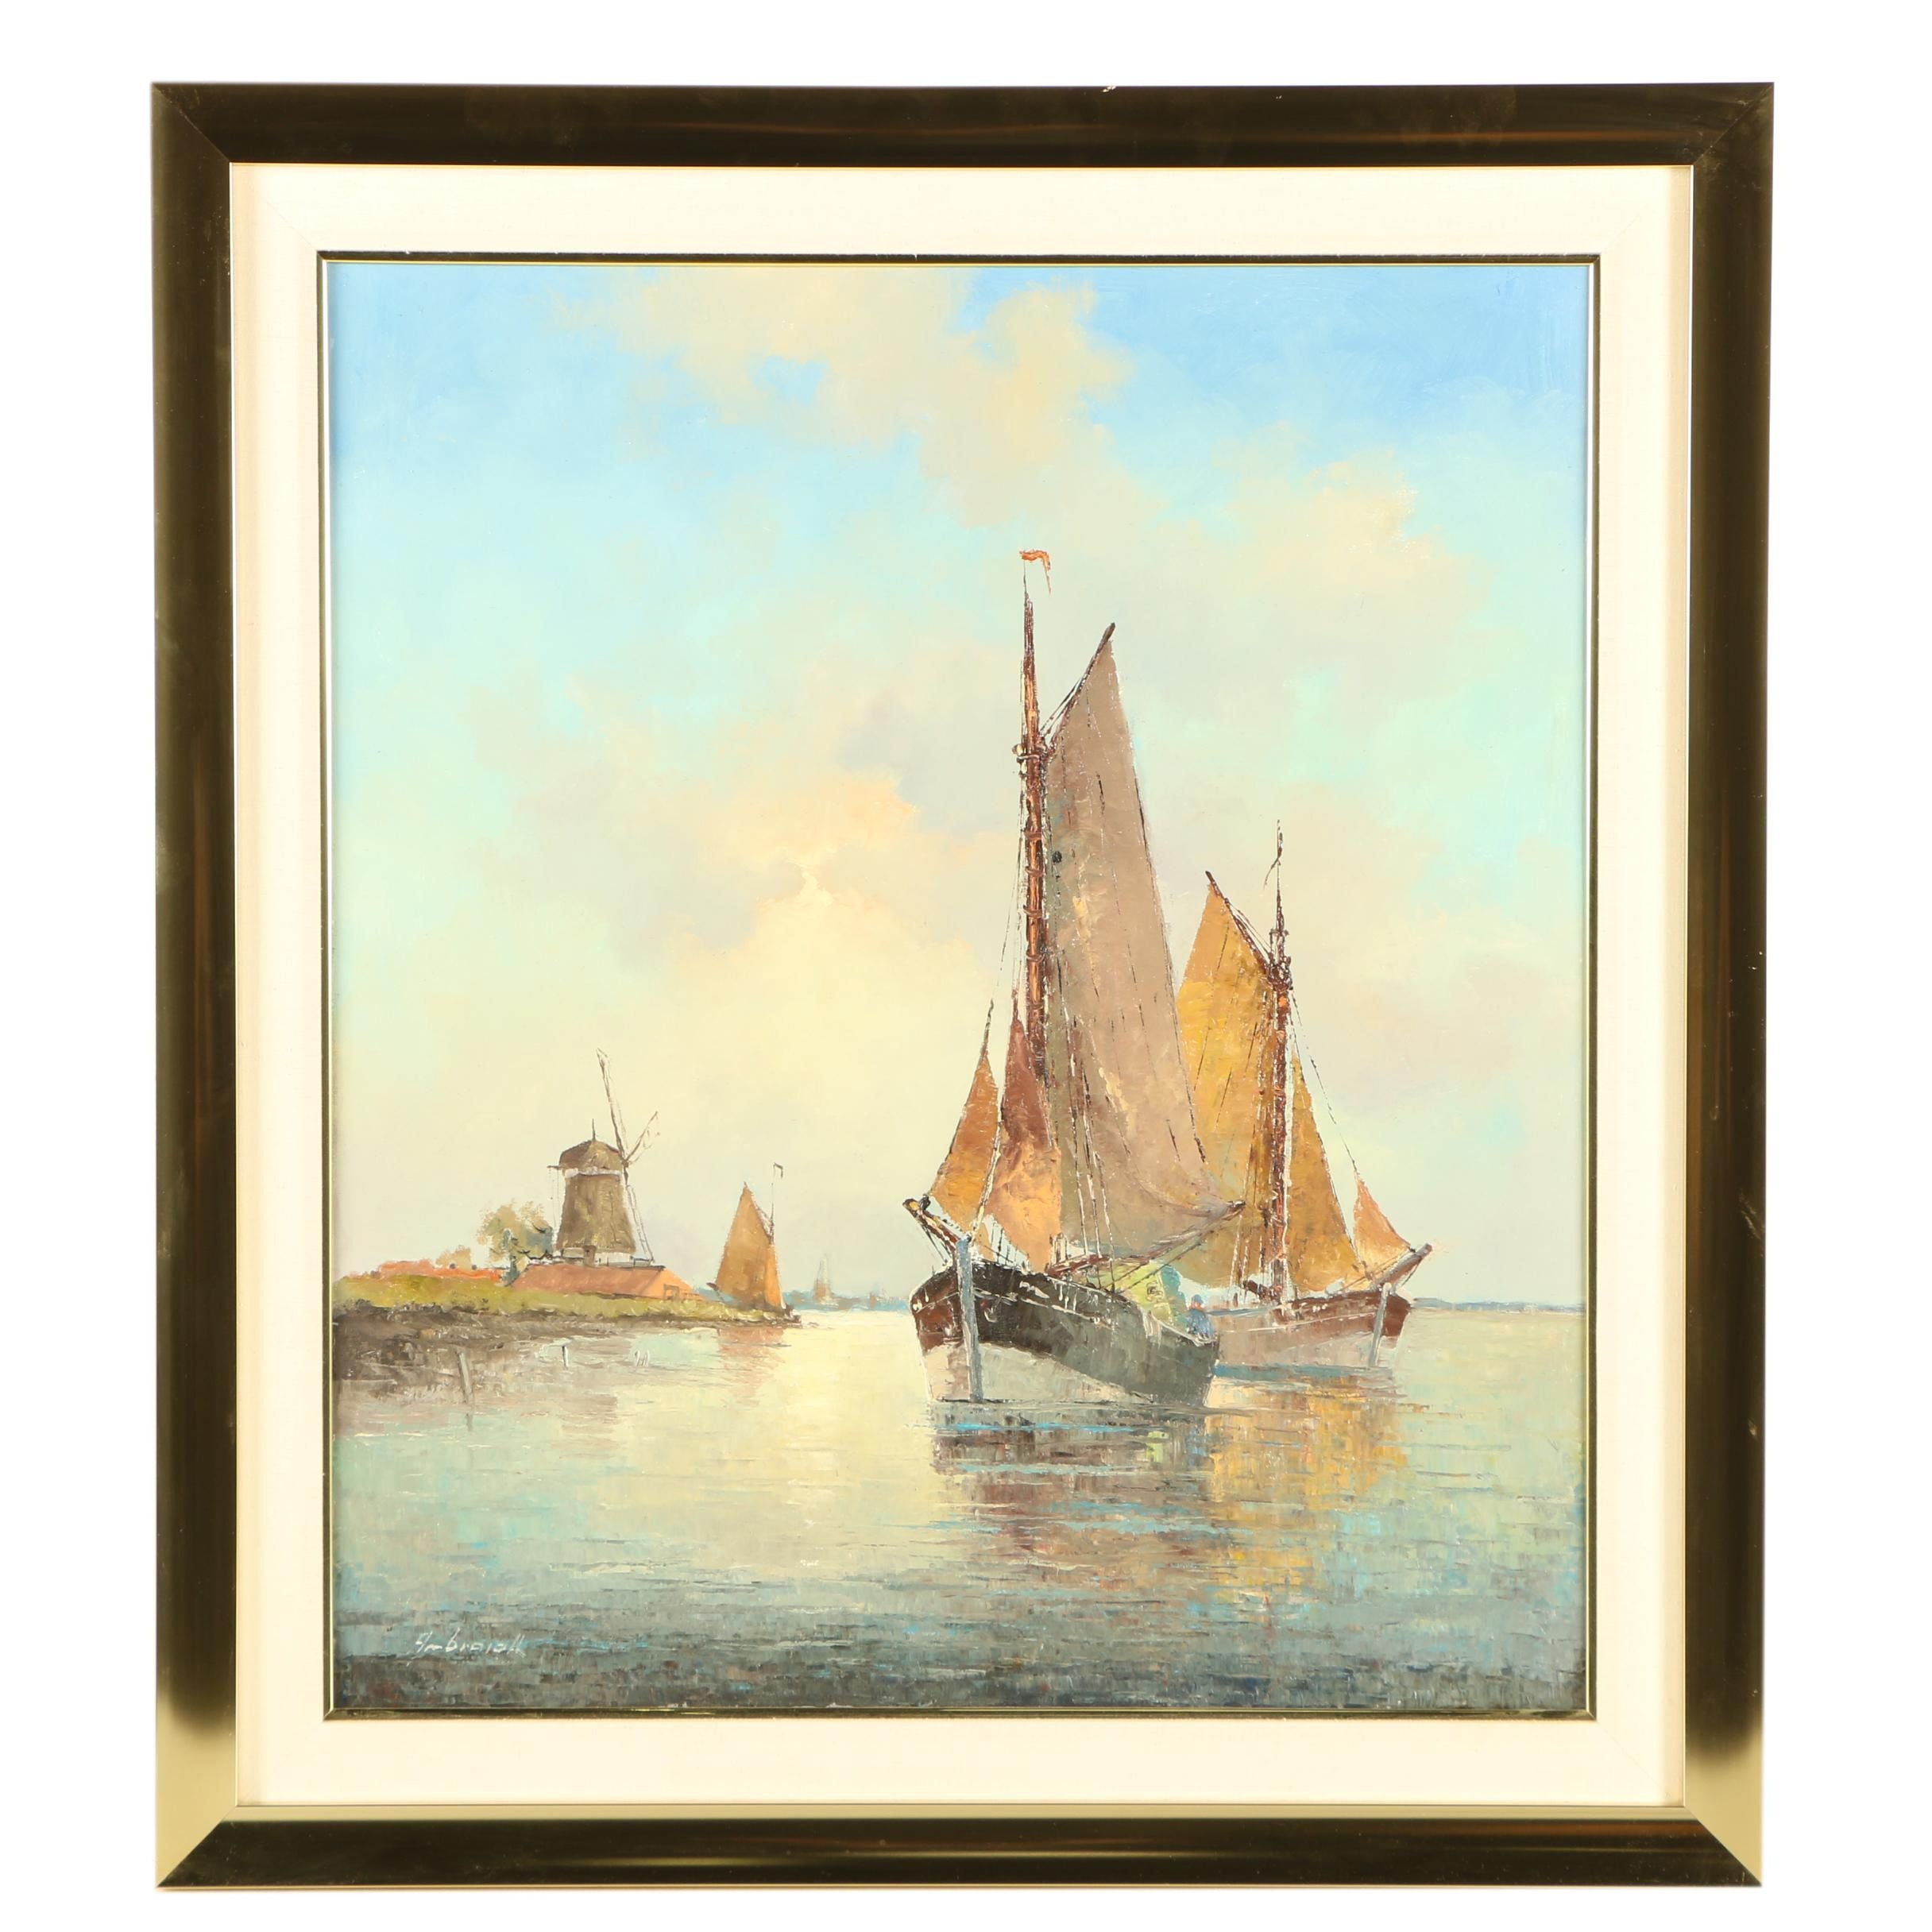 Franz Ambrasath Oil Painting of Fishing Boats